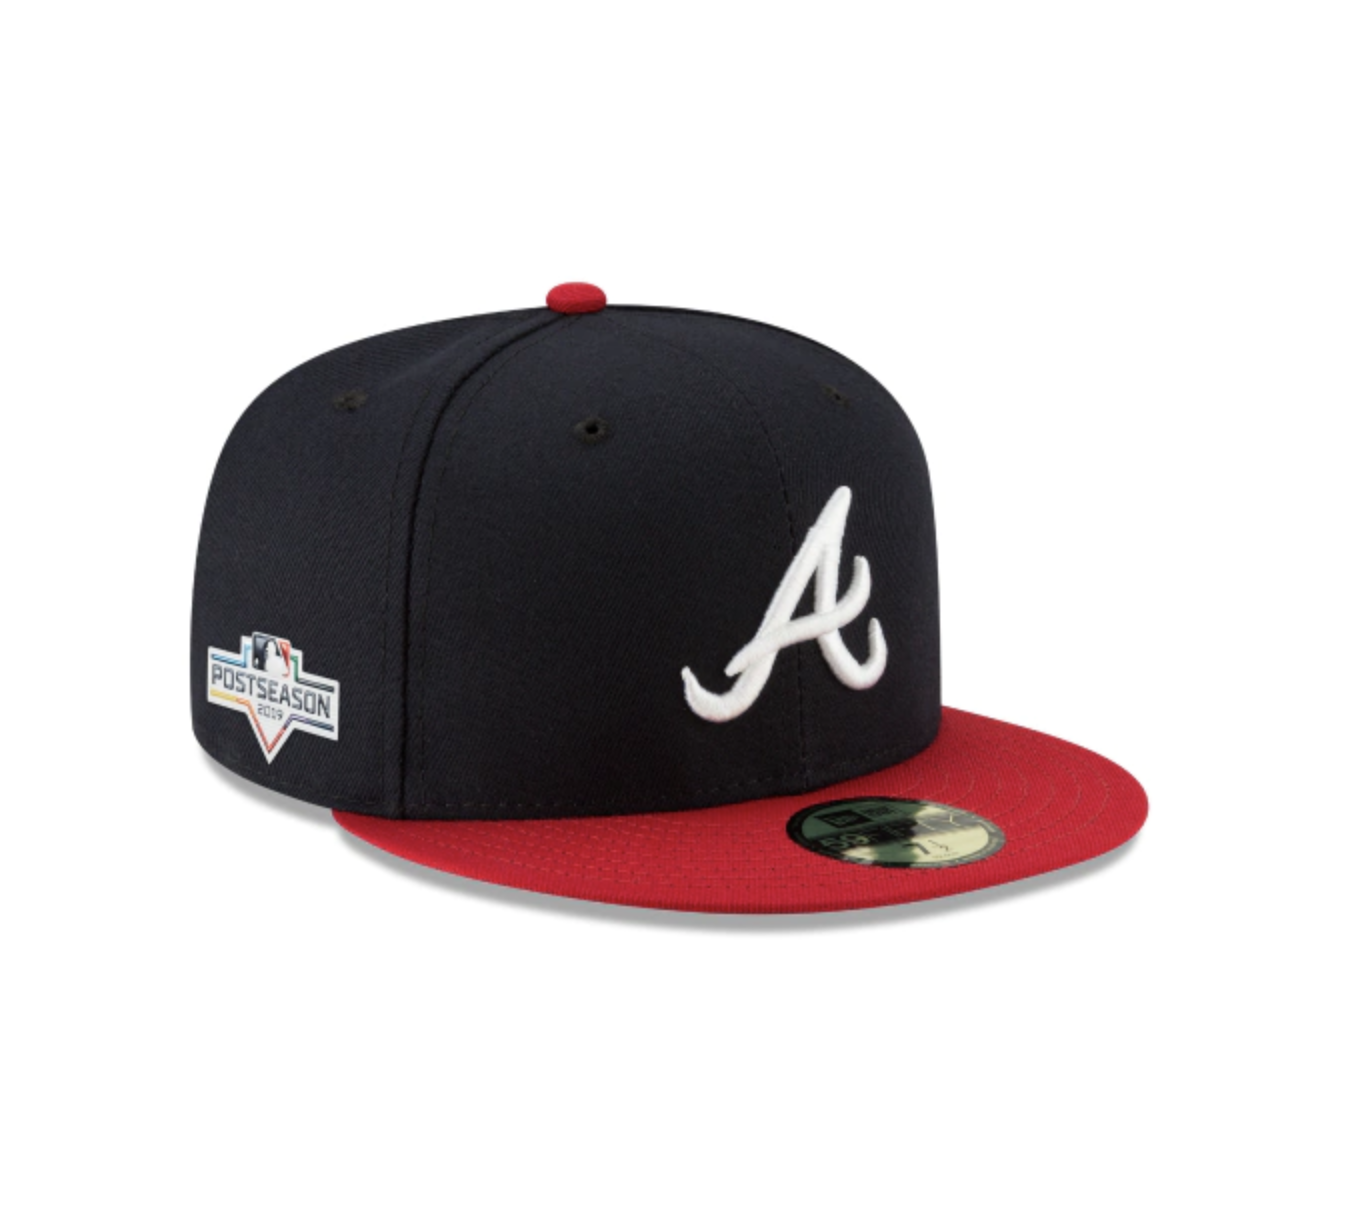 Atlanta Braves Postseason Side Patch 59fifty Fitted Atlanta Braves Fitted Hats Braves